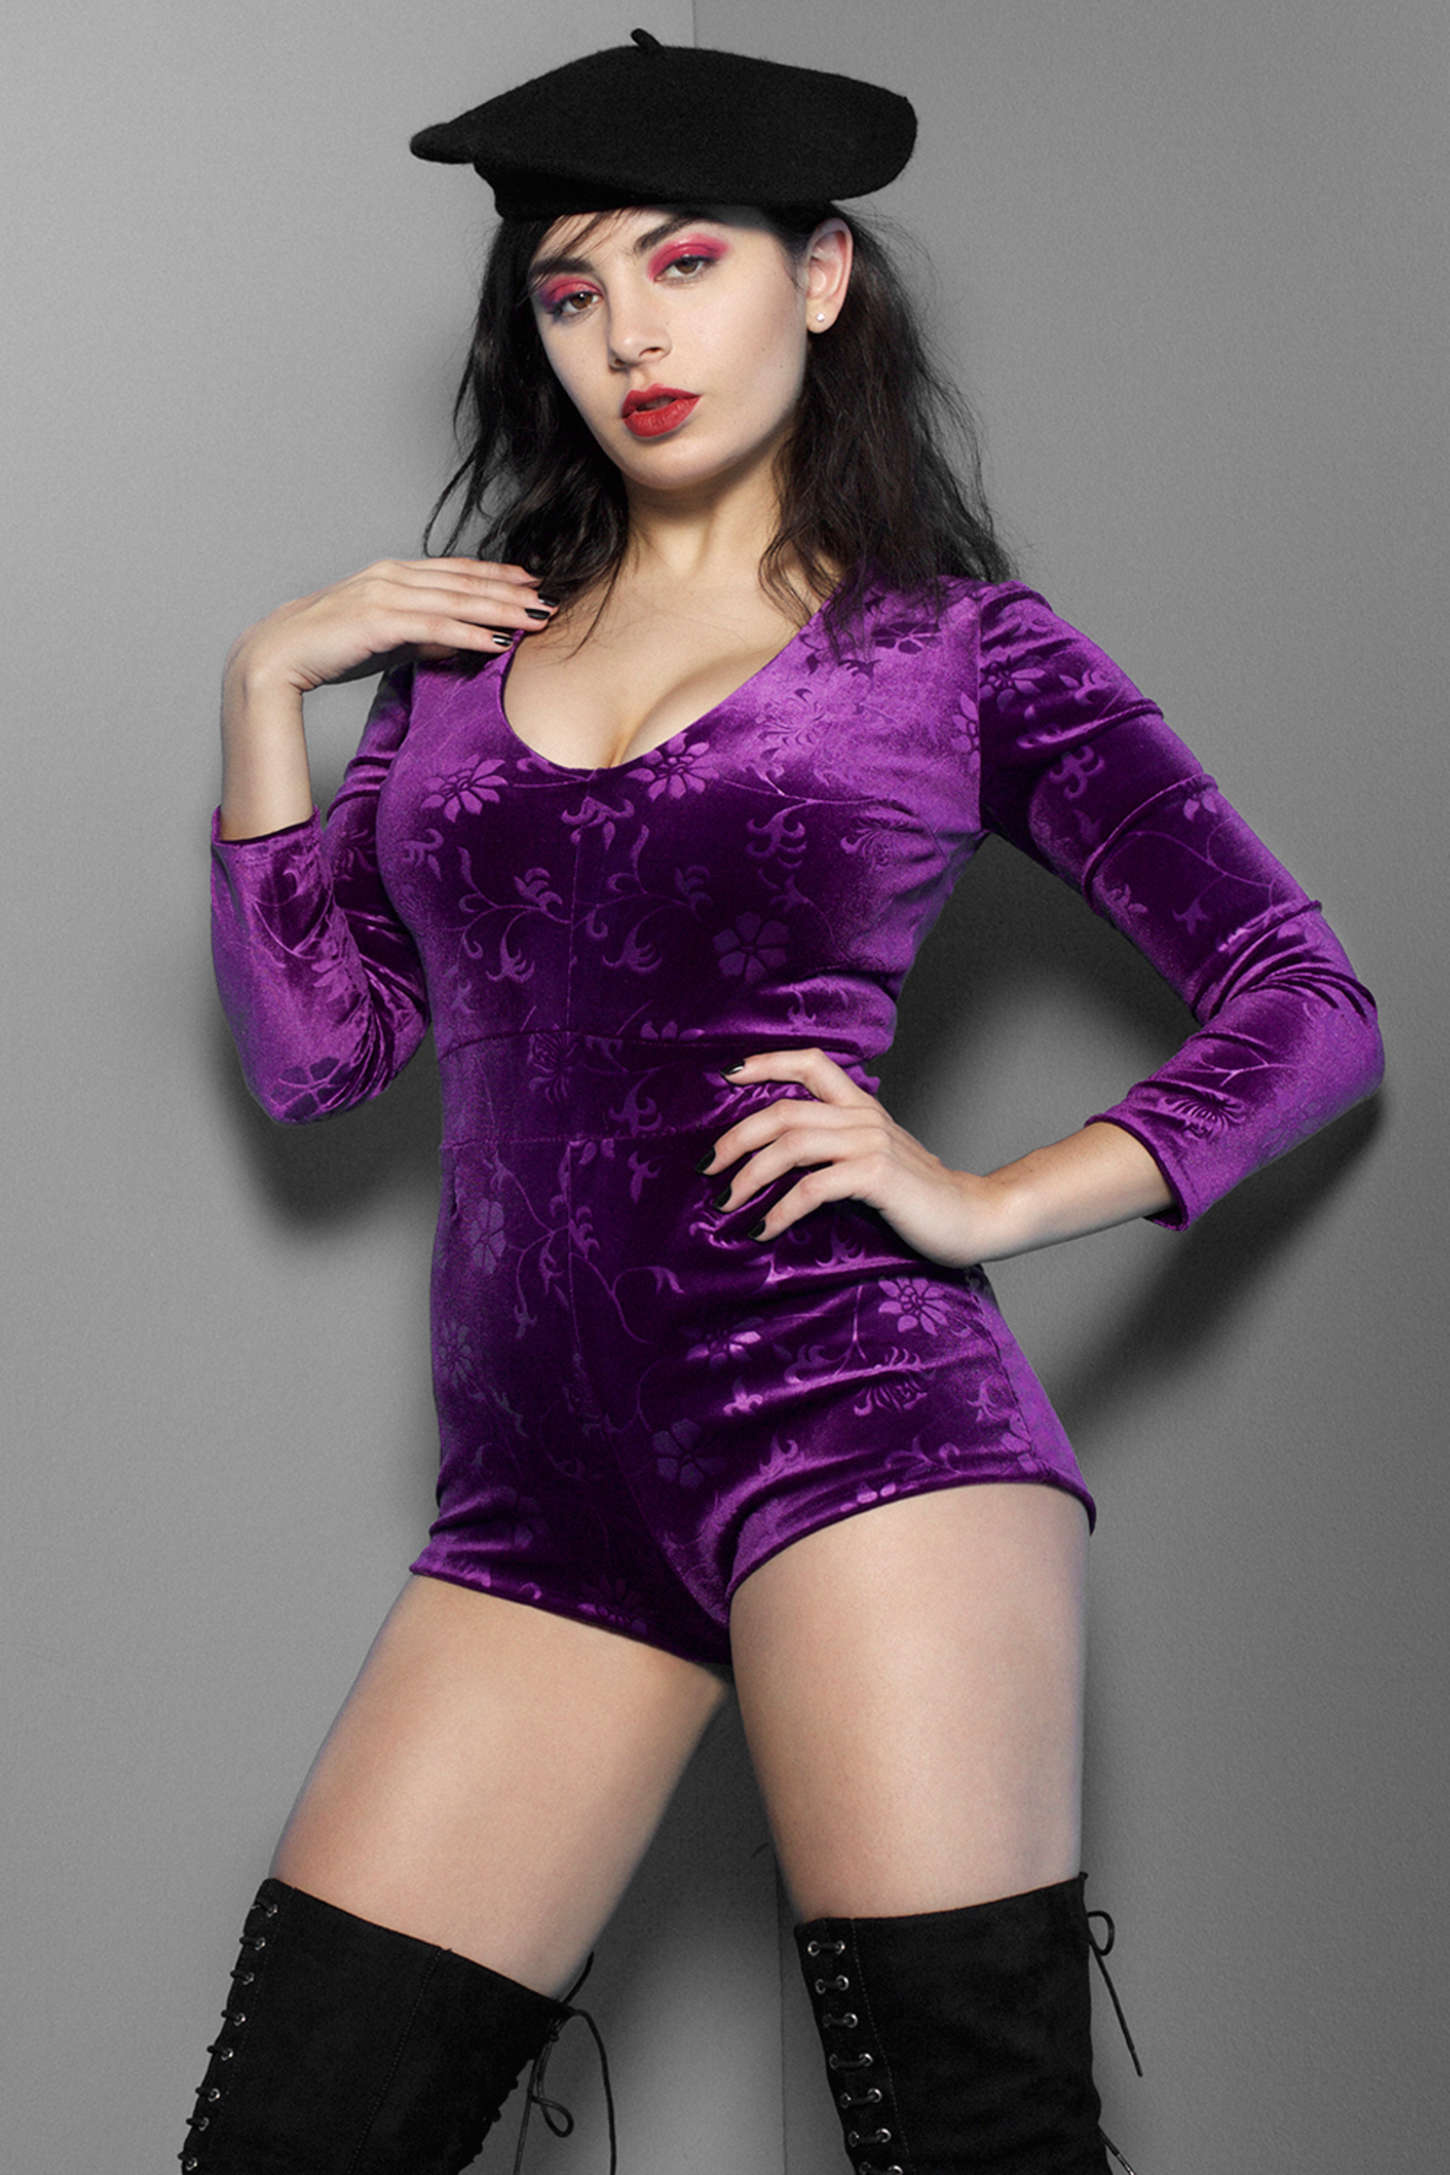 Charli xcx diamond wright photoshoot 2015 adds